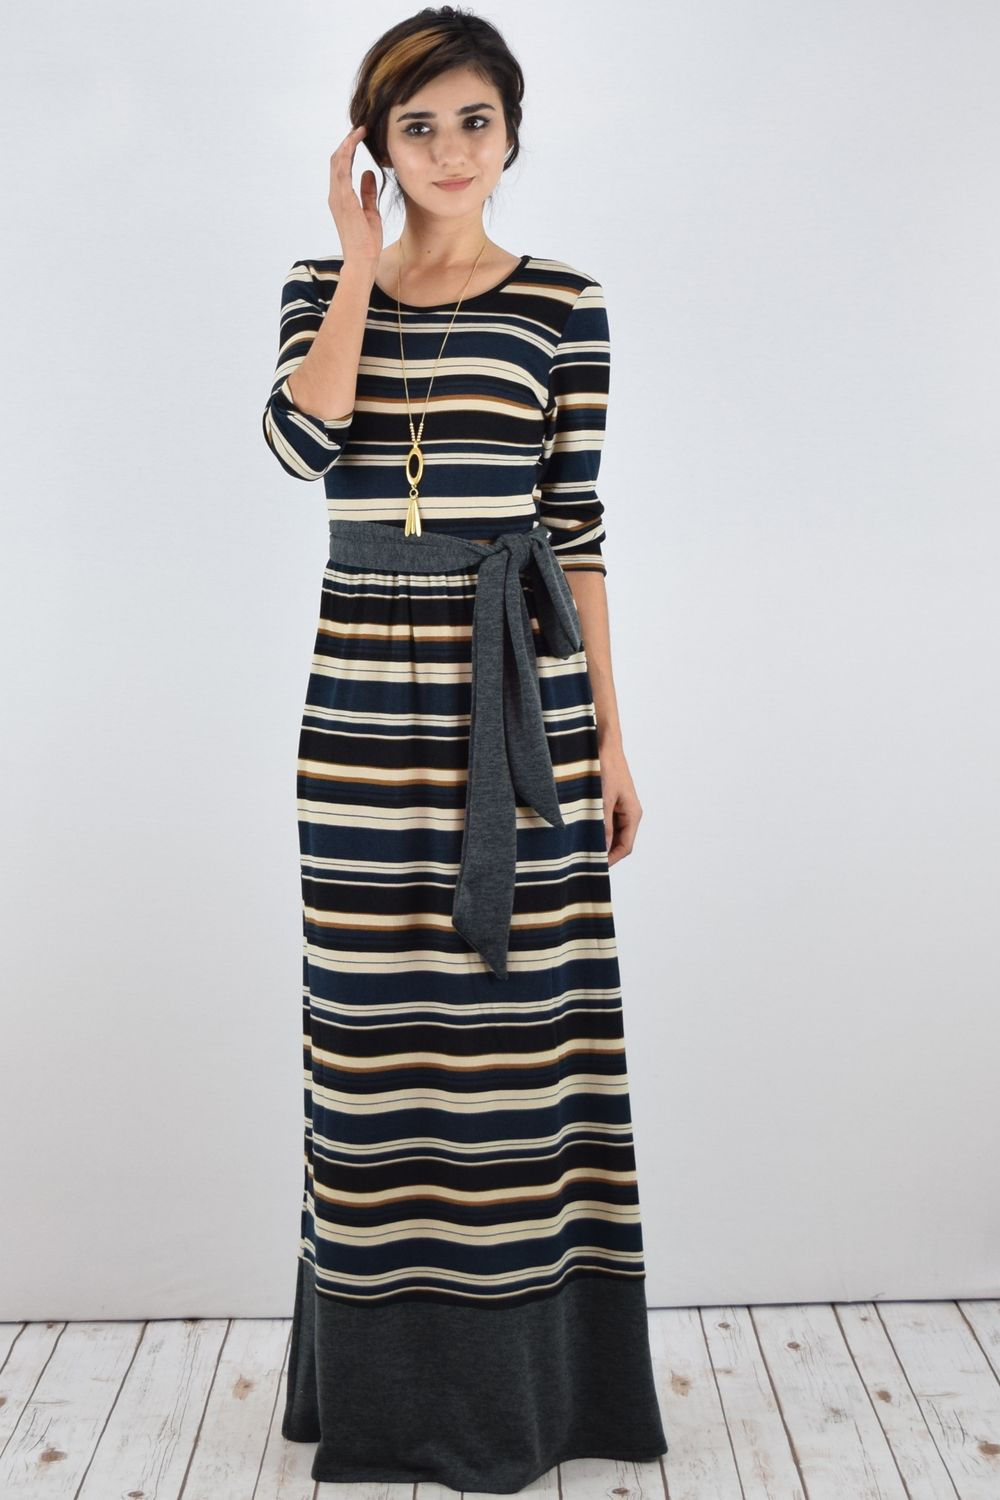 Teal Stripe knit Maxi Dress with Sash_S